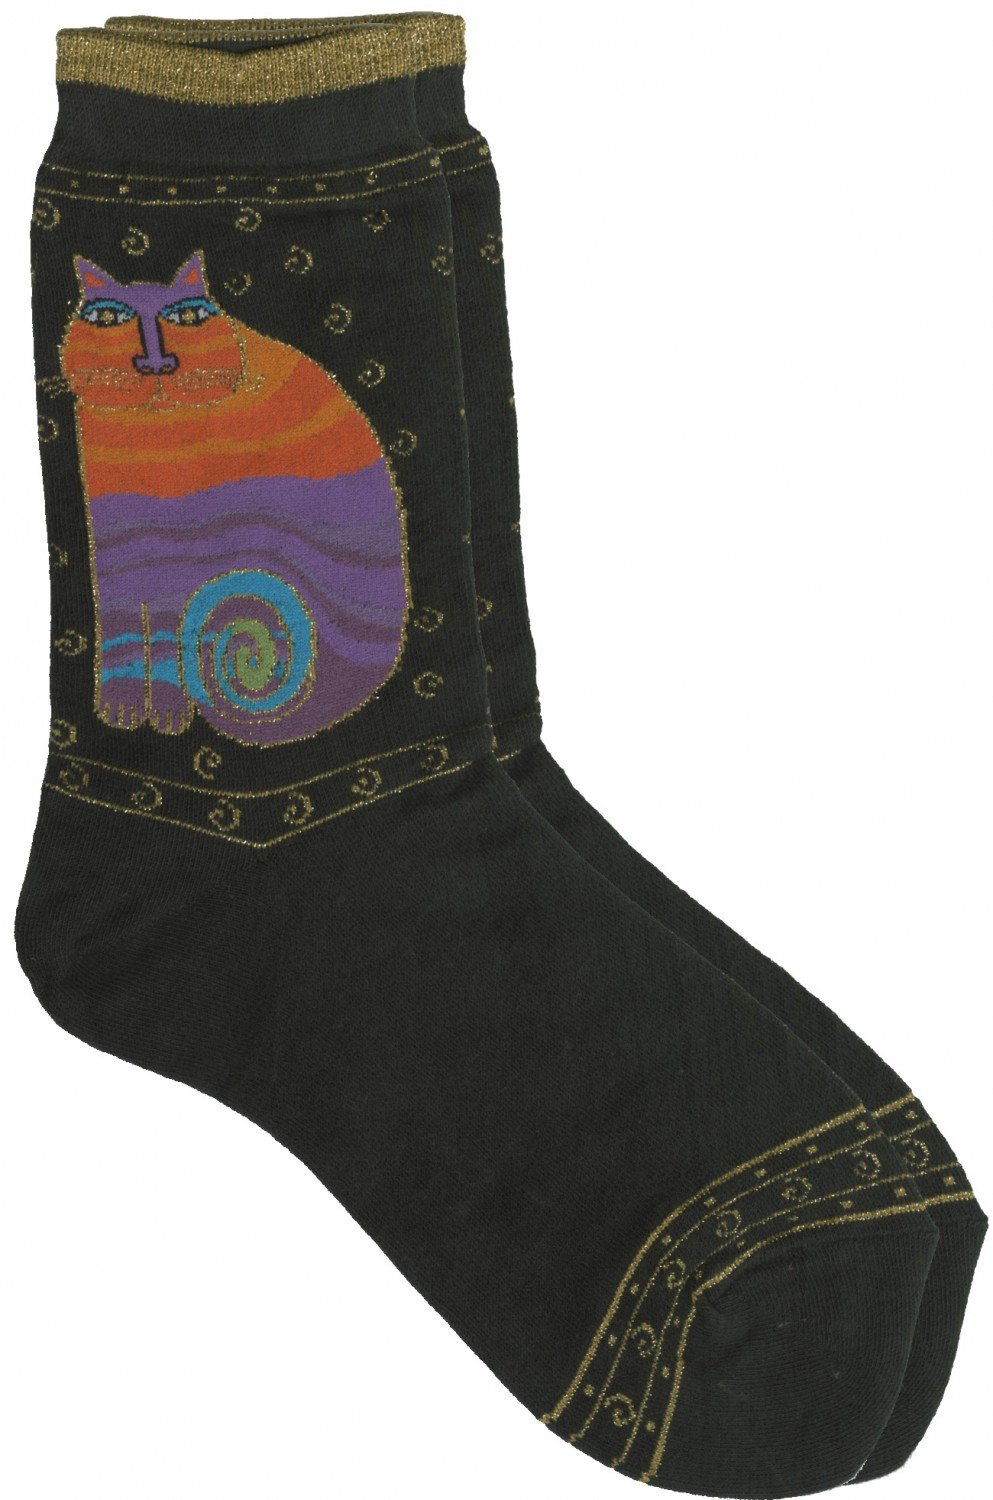 Rainbow Cats Black Socks